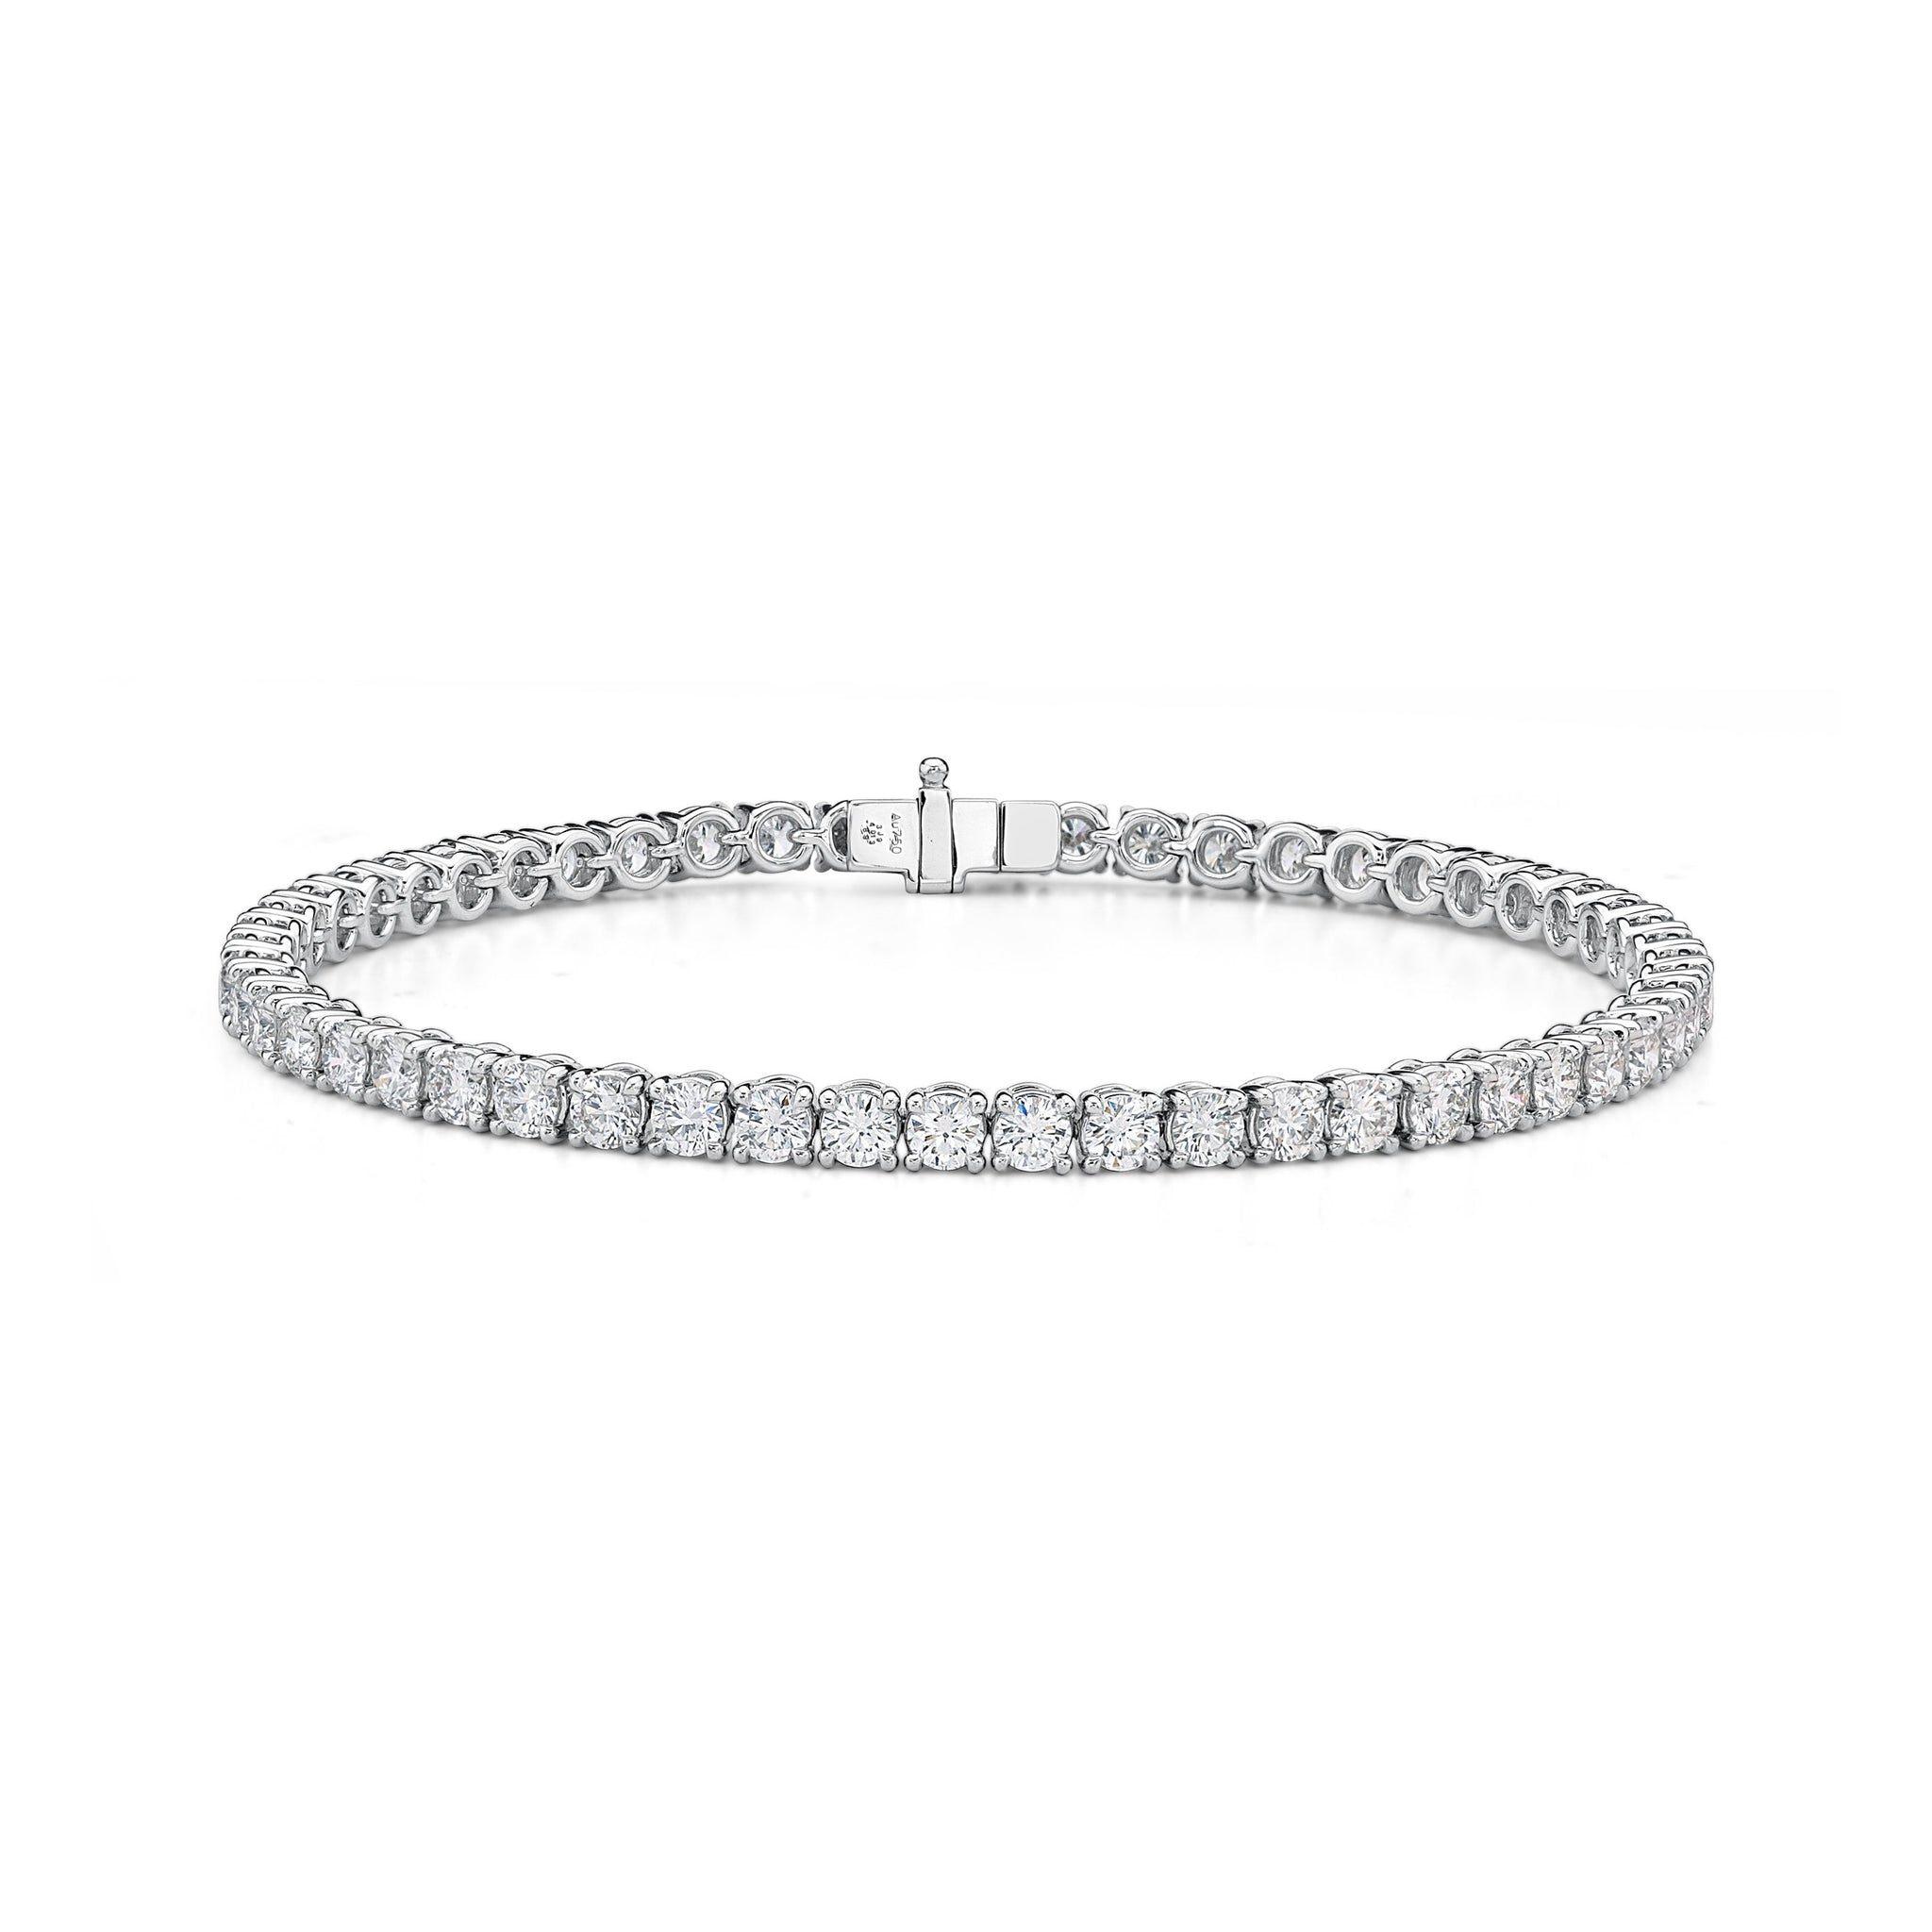 18K White Gold Diamond Line Tennis Bracelet